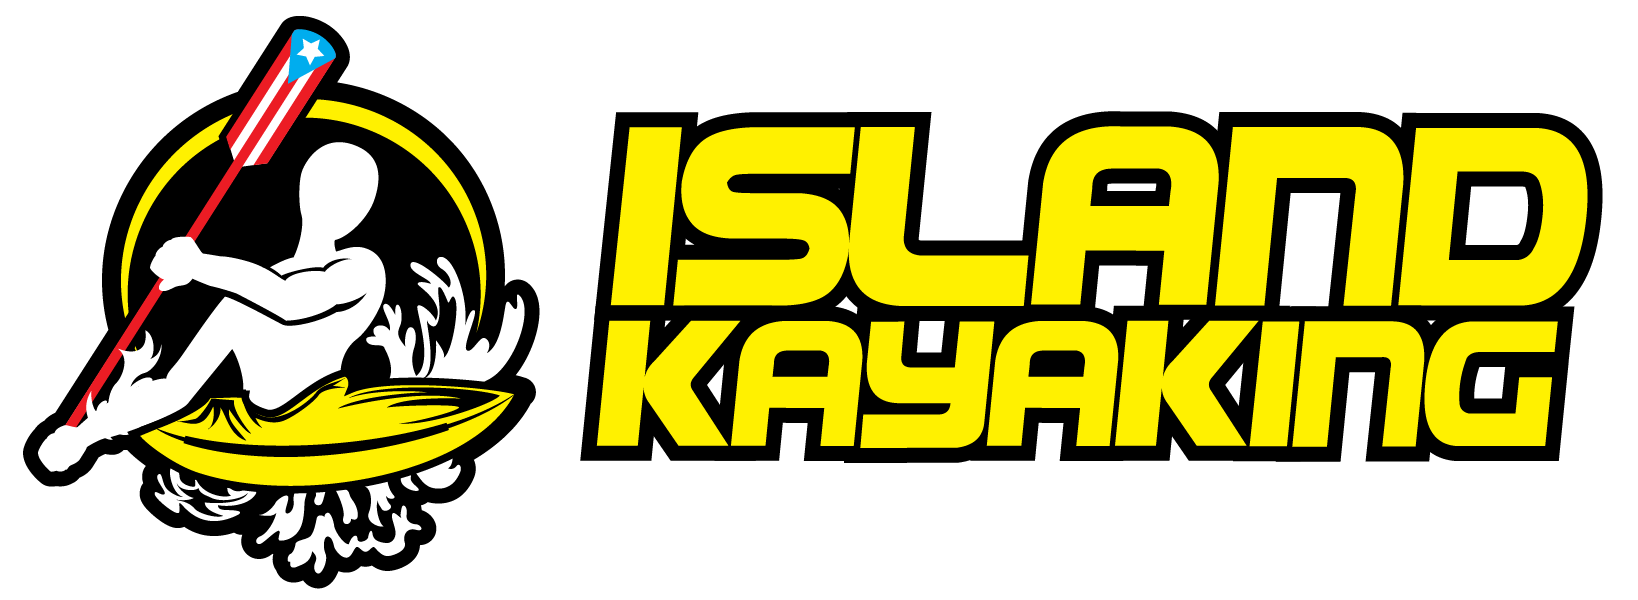 Logo Island Kayaking Adventure